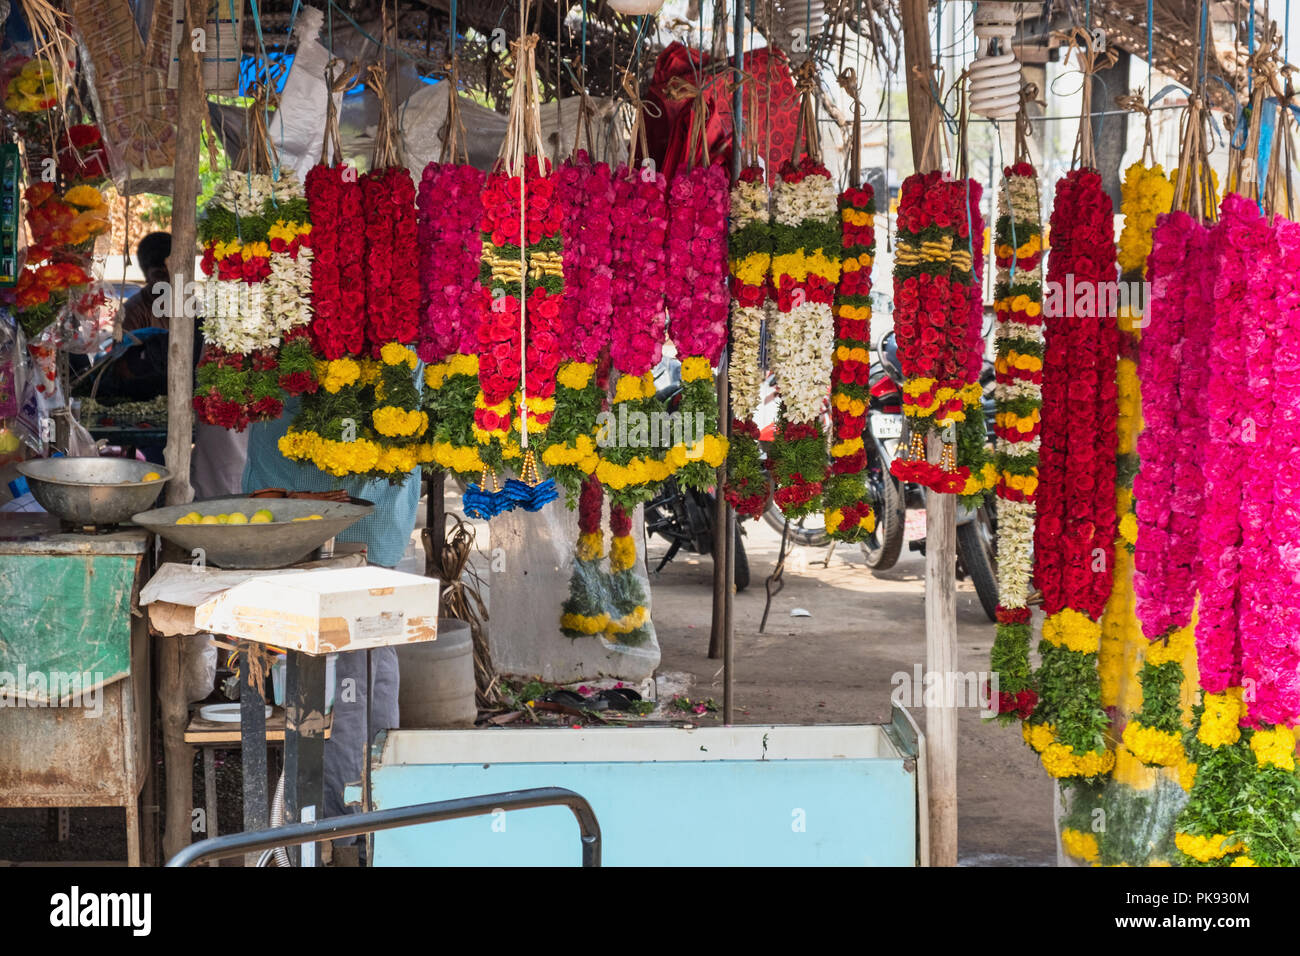 Colourful garlands for sale in an Indian flower market. They are widely used for dedications in Hindu rituals and for decorating festive occasions - Stock Image